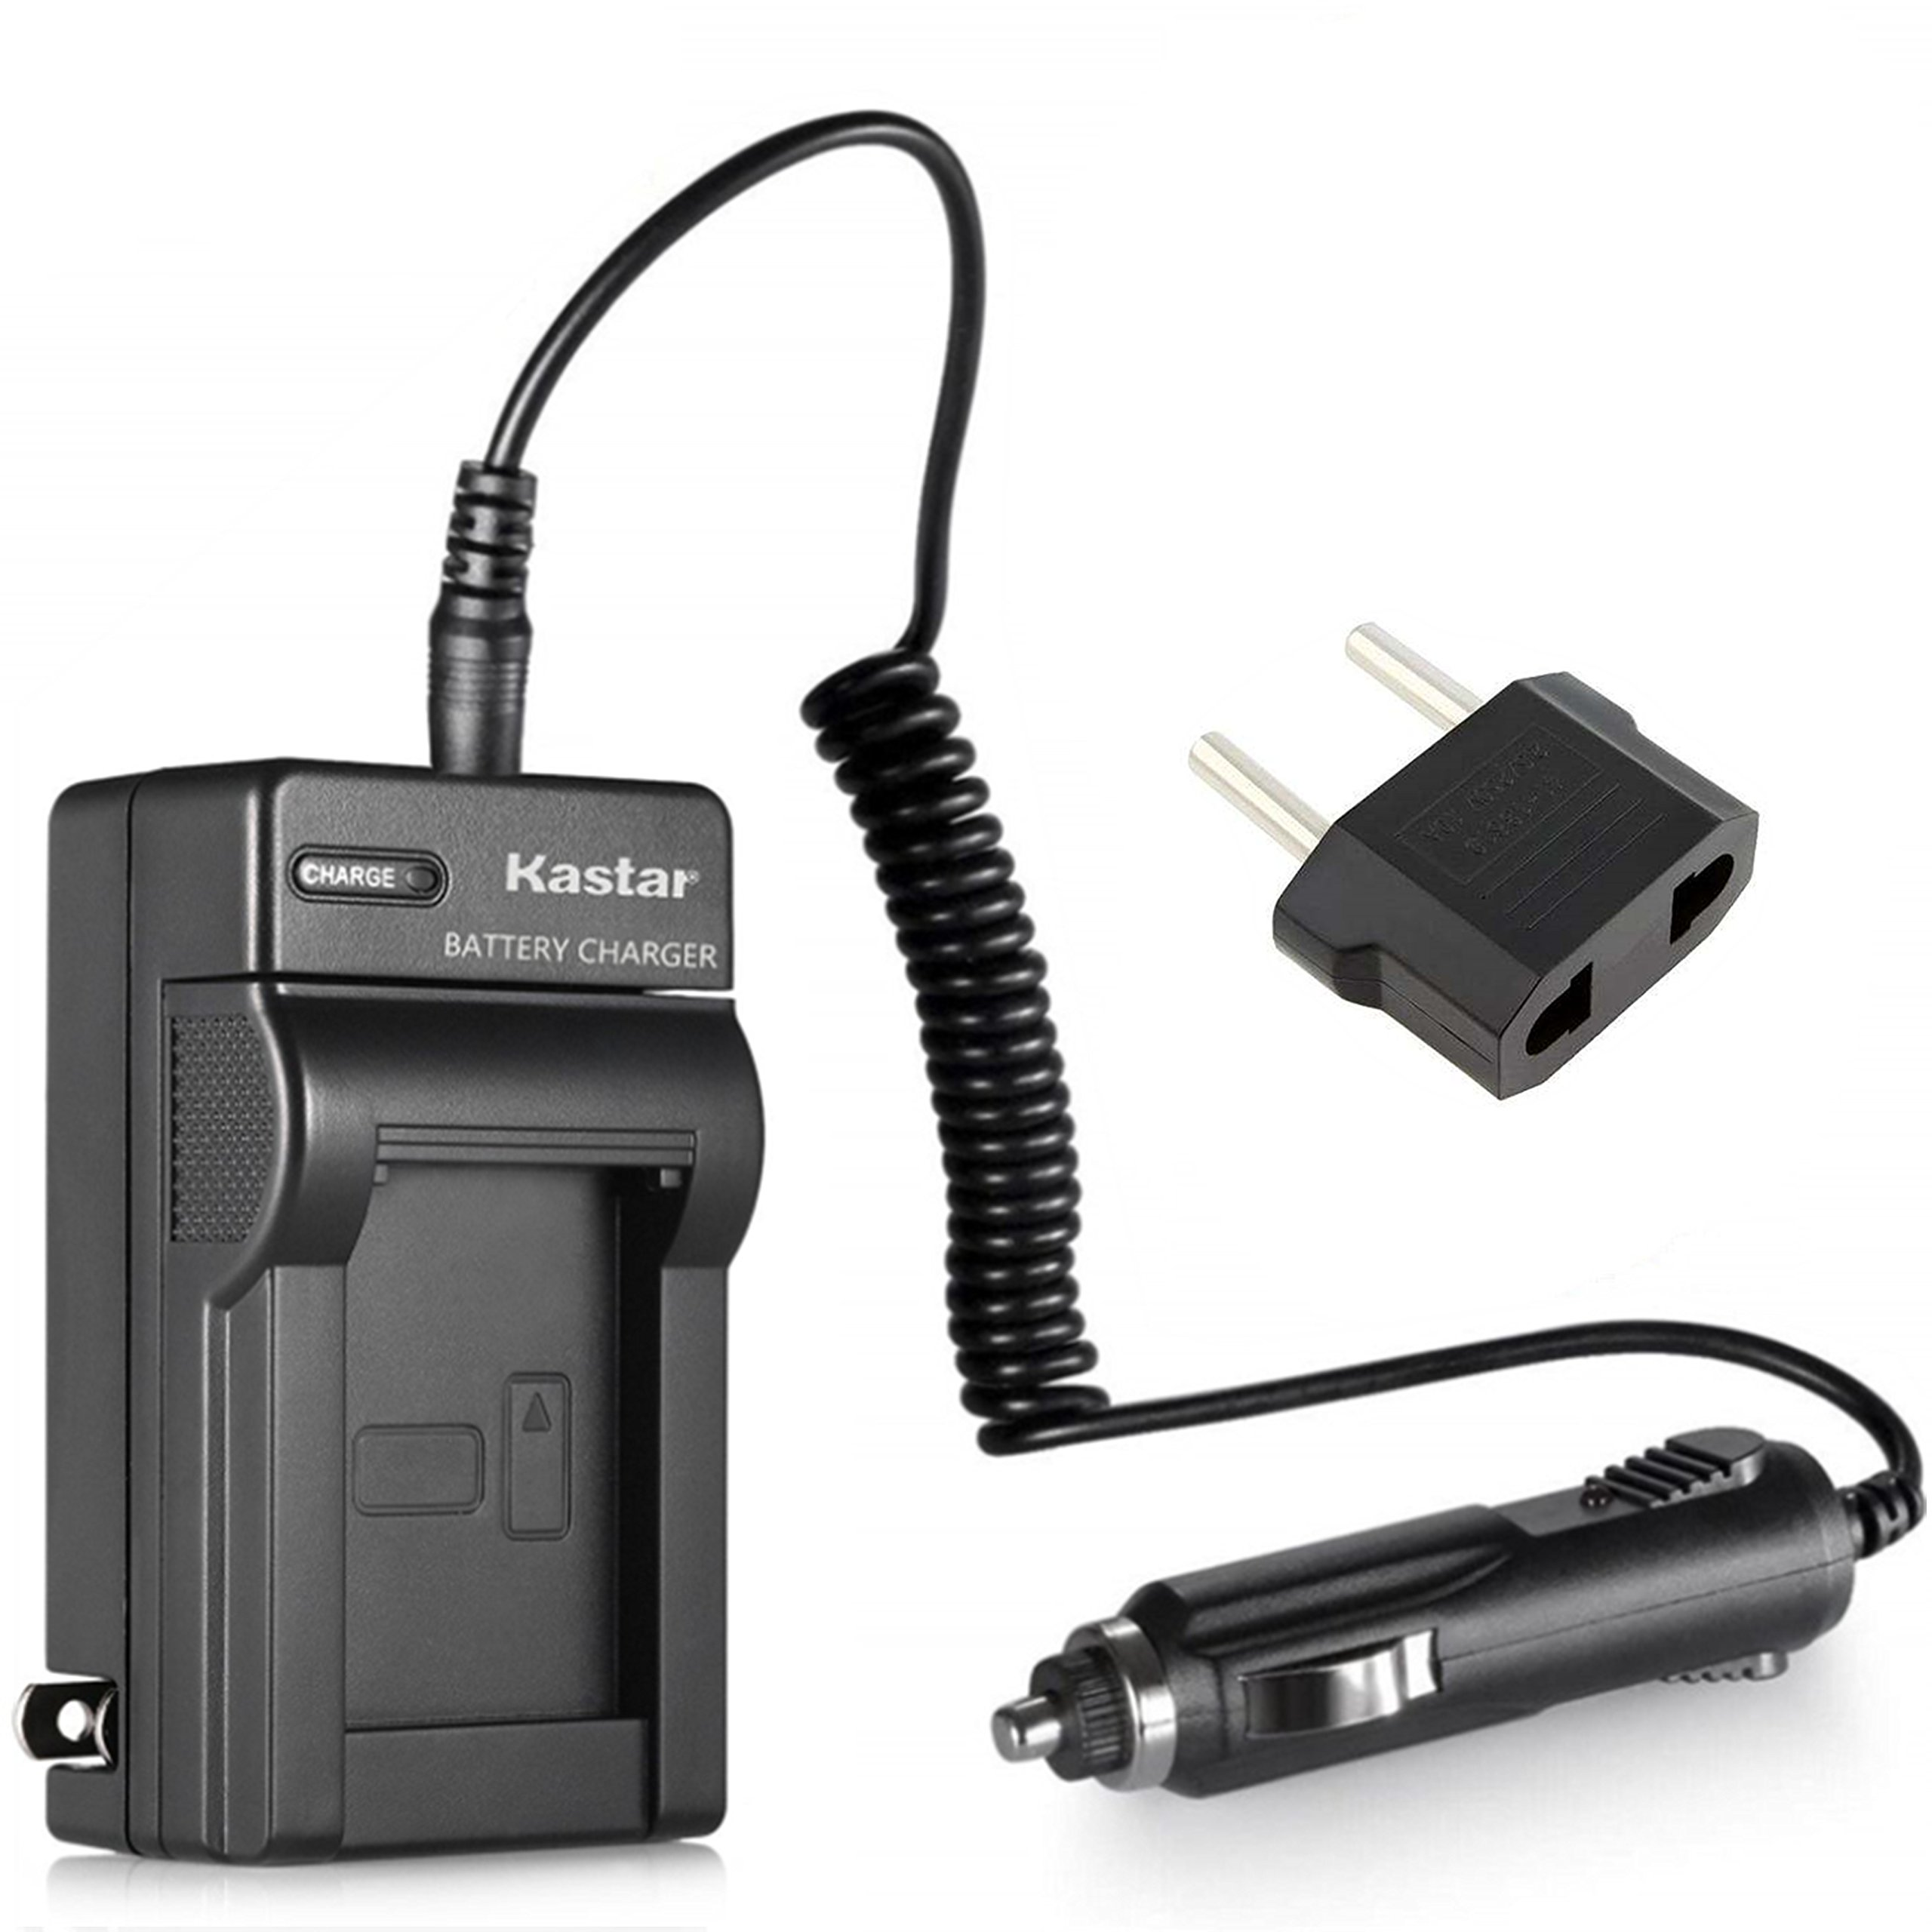 Kastar Charger for Sony NP-FM30, NP-FM50, NP-FM51, NP-FM70, NP-FM71, NP-FM90, NP-FM91, NP-QM50, NP-QM51, NP-QM70, NP-QM71, NP-QM90, NP-QM91 and Sony DCR Series